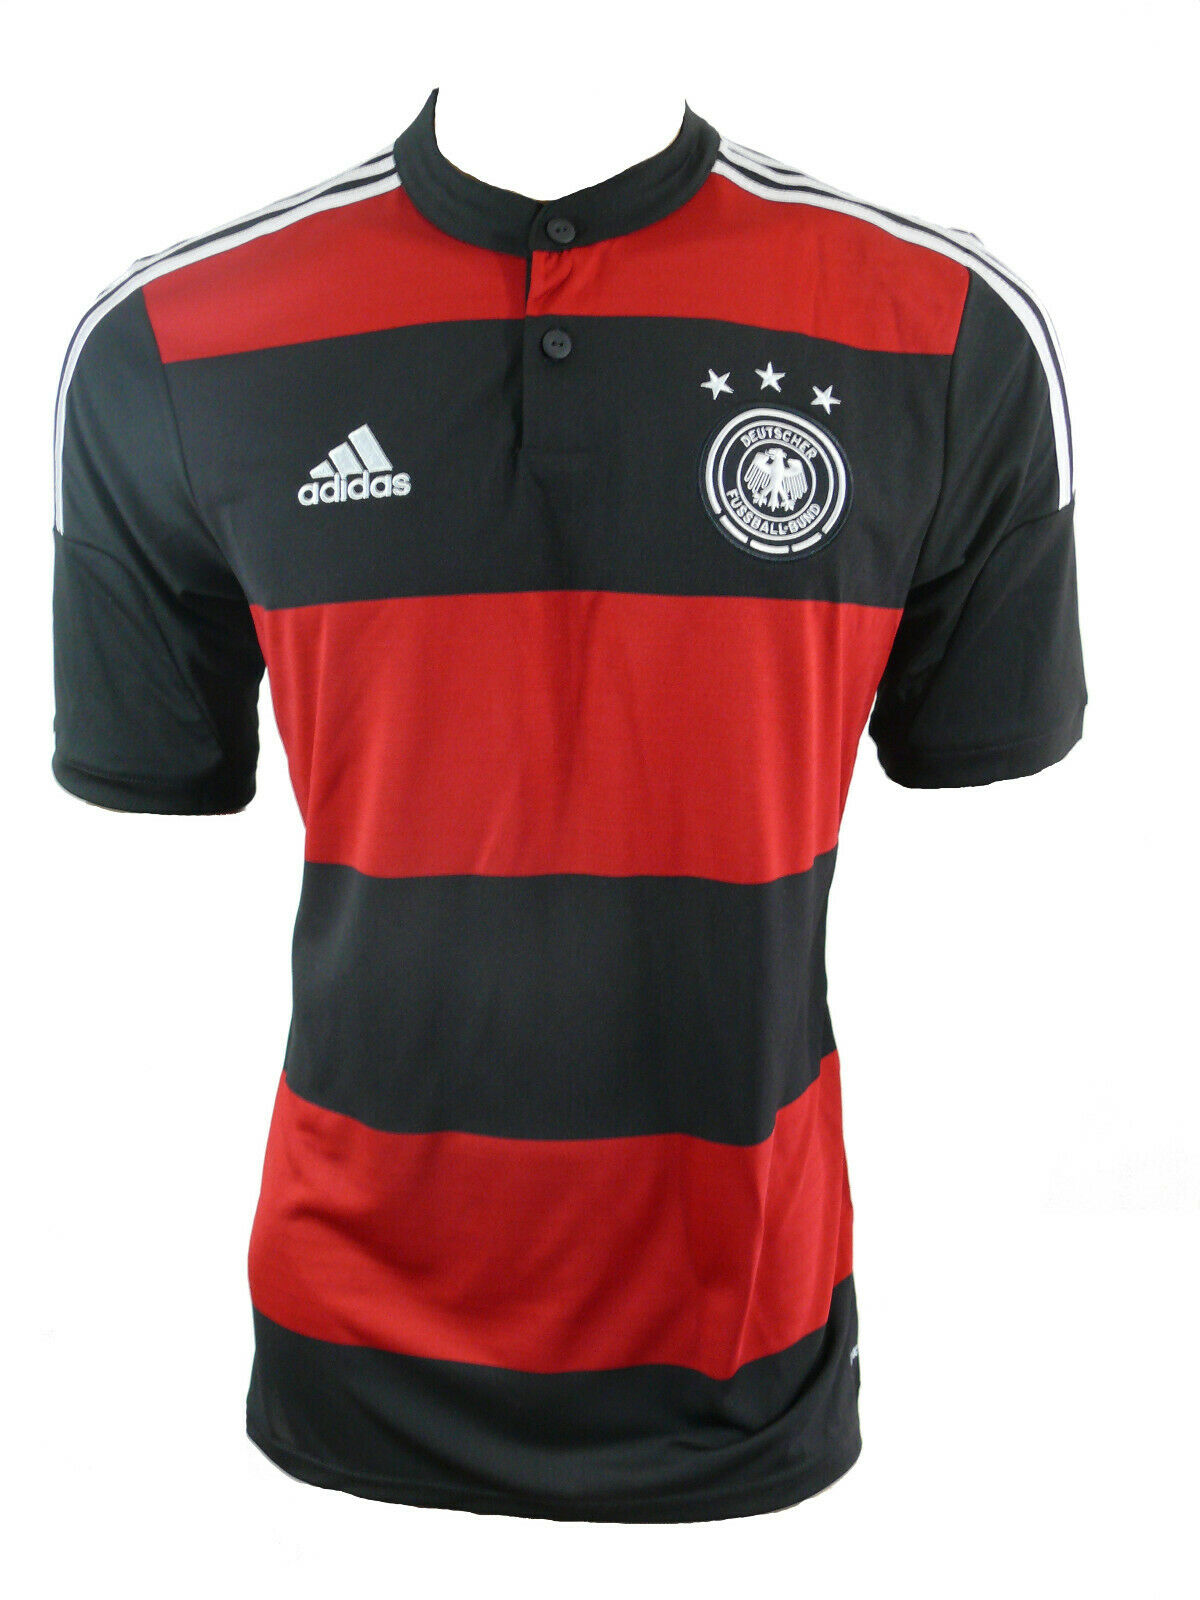 Adidas Alemania DFB Jersey Maillot